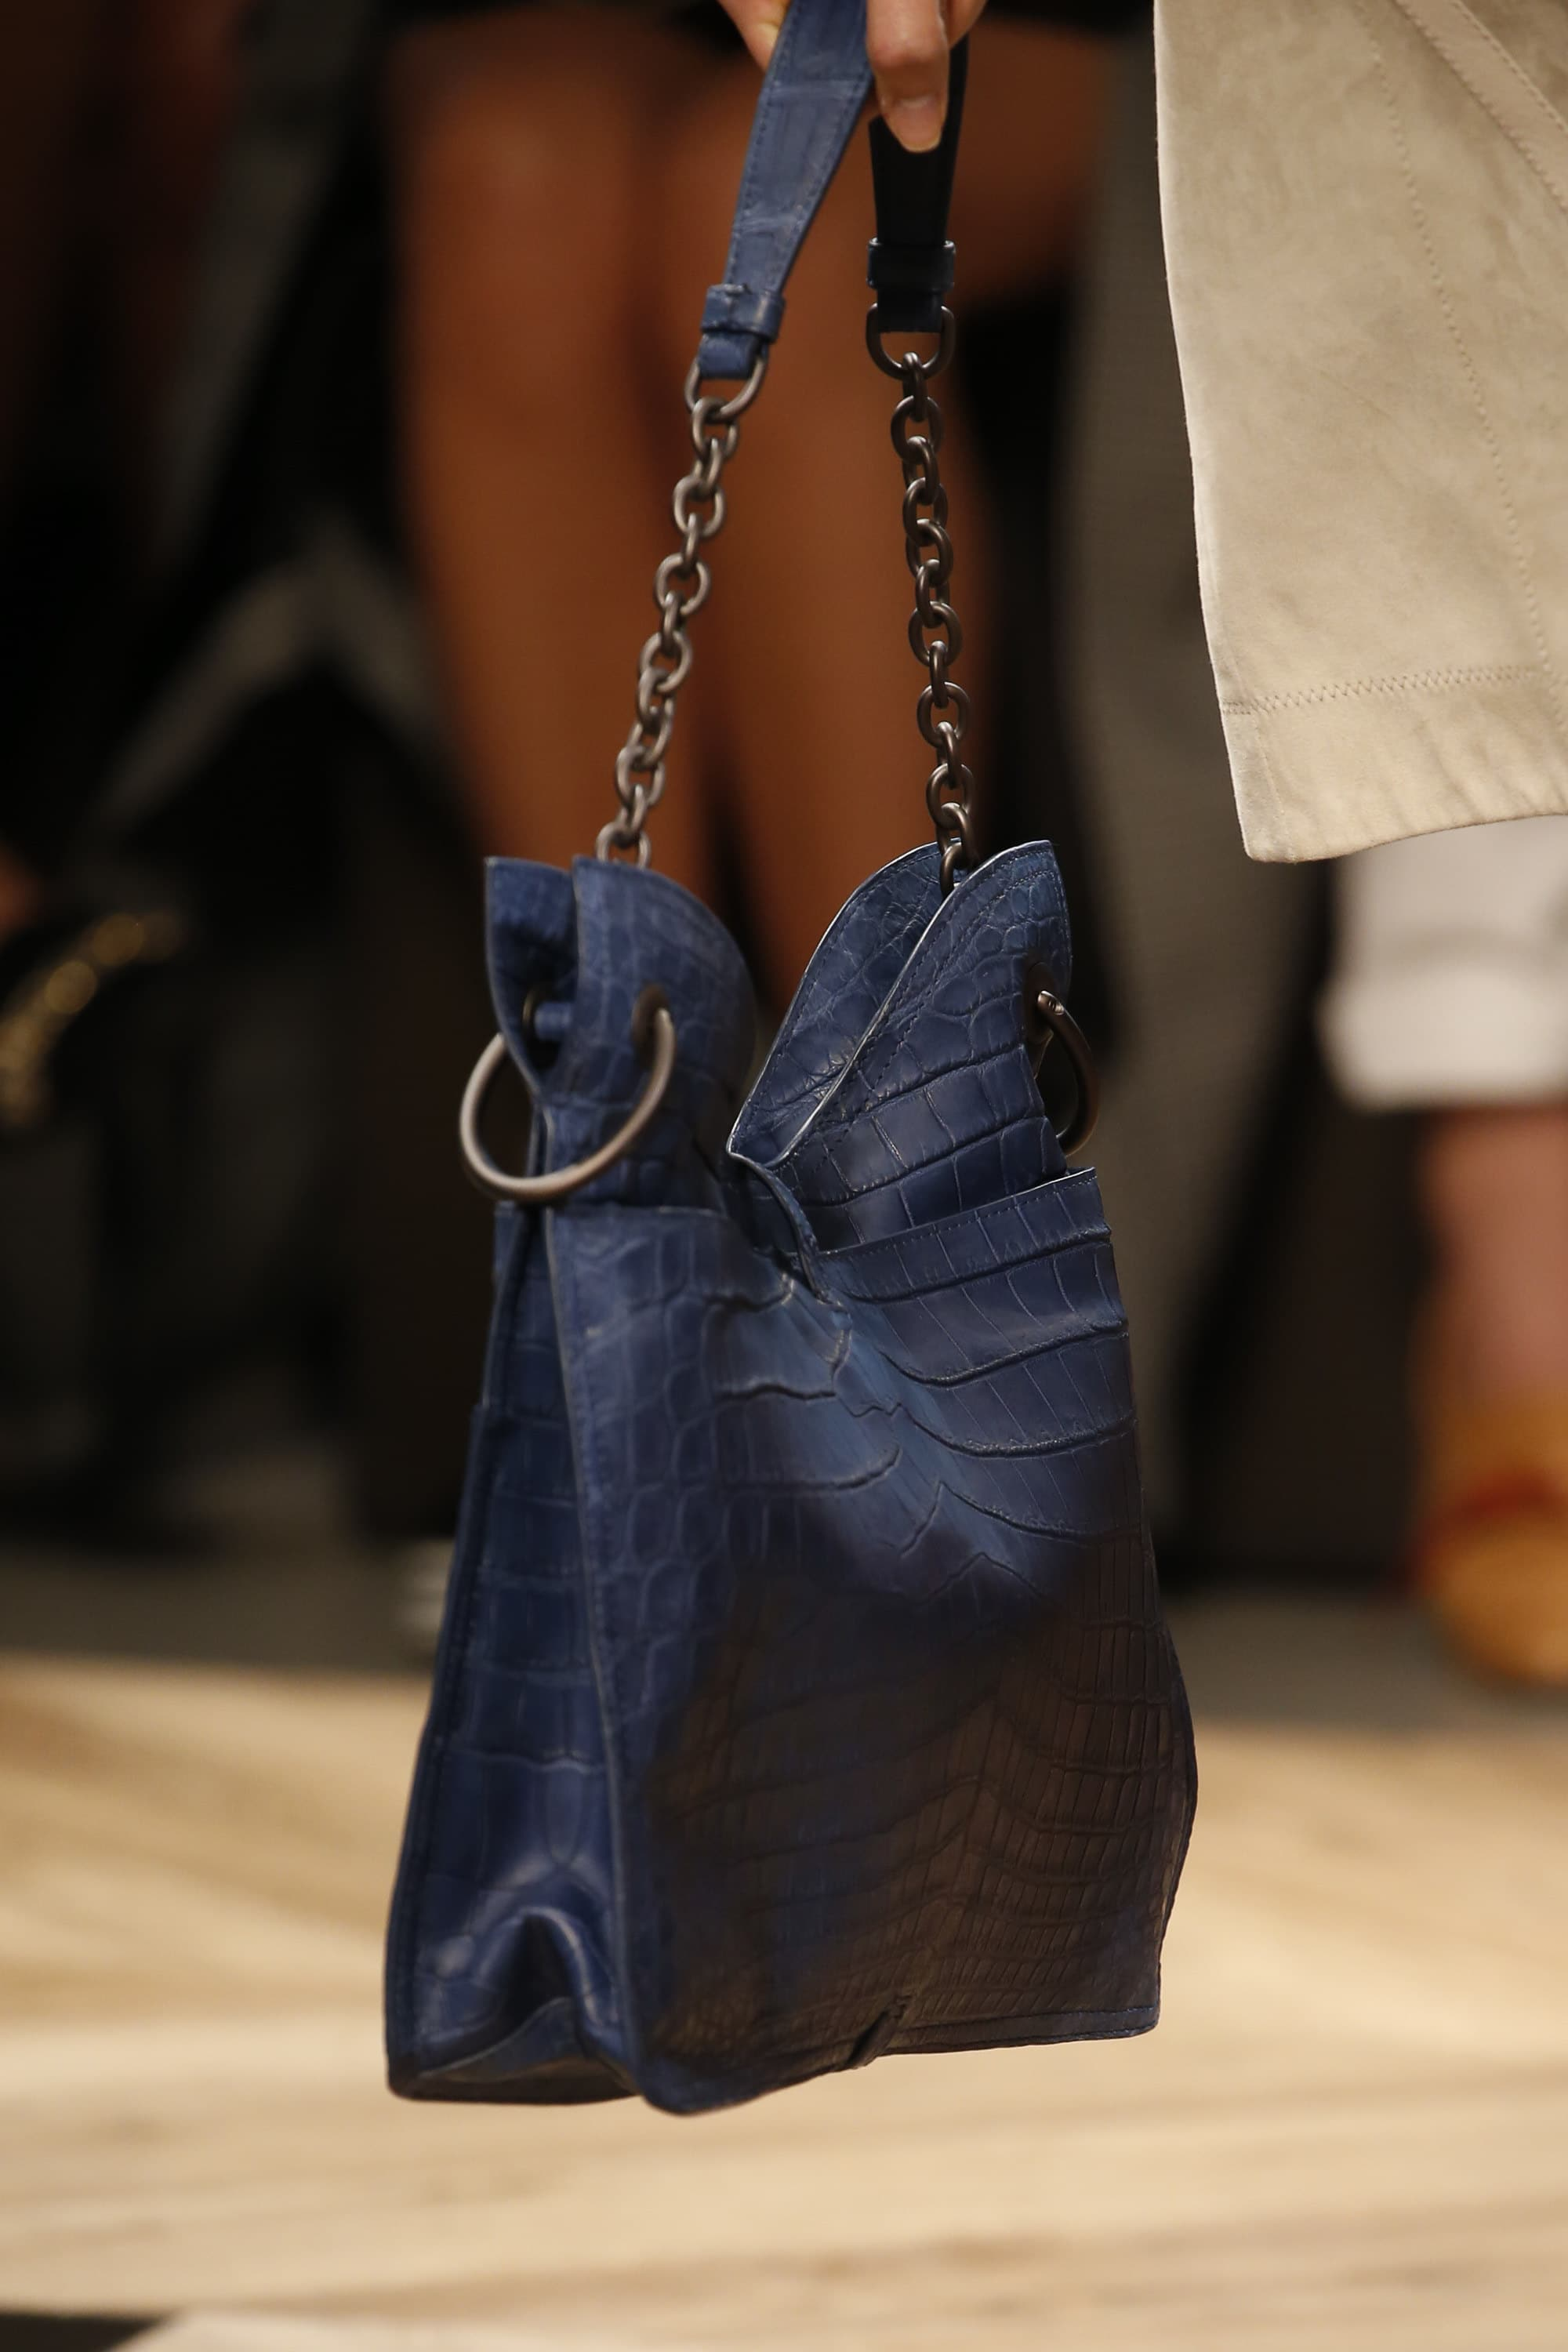 3b43b2bc071b Bottega Veneta Spring Summer 2016 Runway Bag Collection